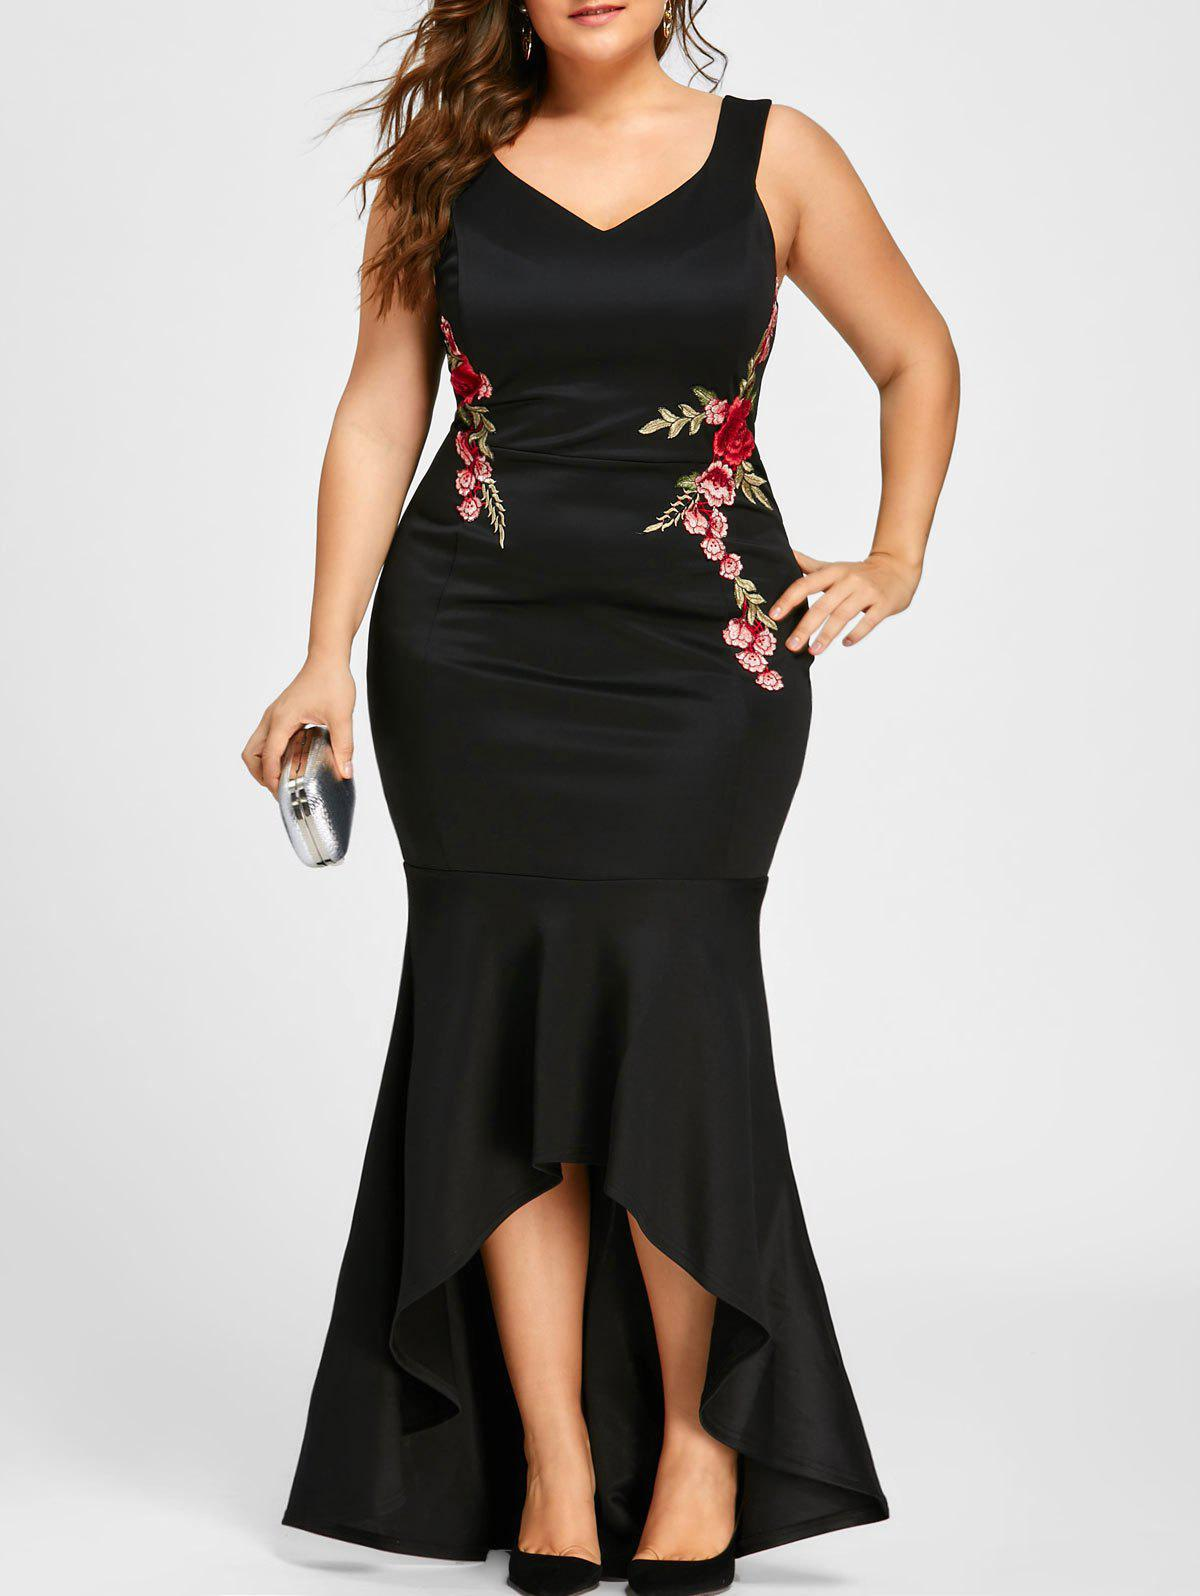 Plus Size Sleeveless Party Mermaid Engagement DressWOMEN<br><br>Size: 4XL; Color: BLACK; Style: Brief; Material: Polyester,Spandex; Silhouette: Trumpet/Mermaid; Dresses Length: Floor-Length; Neckline: V-Neck; Sleeve Length: Sleeveless; Embellishment: Appliques,Embroidery; Pattern Type: Floral; With Belt: No; Season: Fall,Spring,Summer; Weight: 0.5500kg; Package Contents: 1 x Dress;